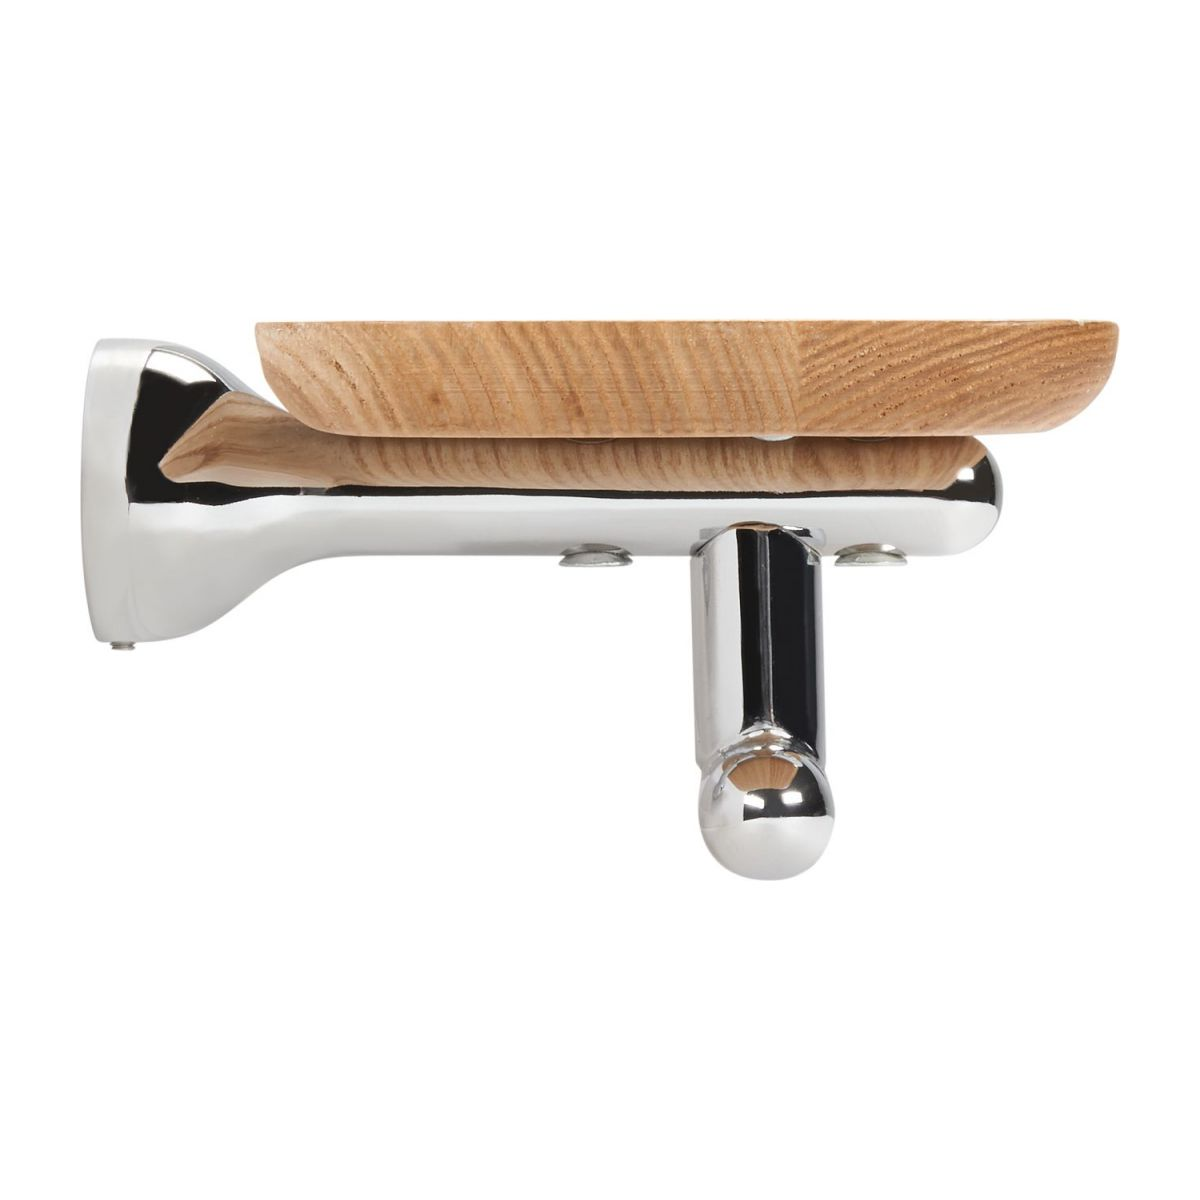 Towel holder shelf 70cm in beechwood and stainless steel n°3